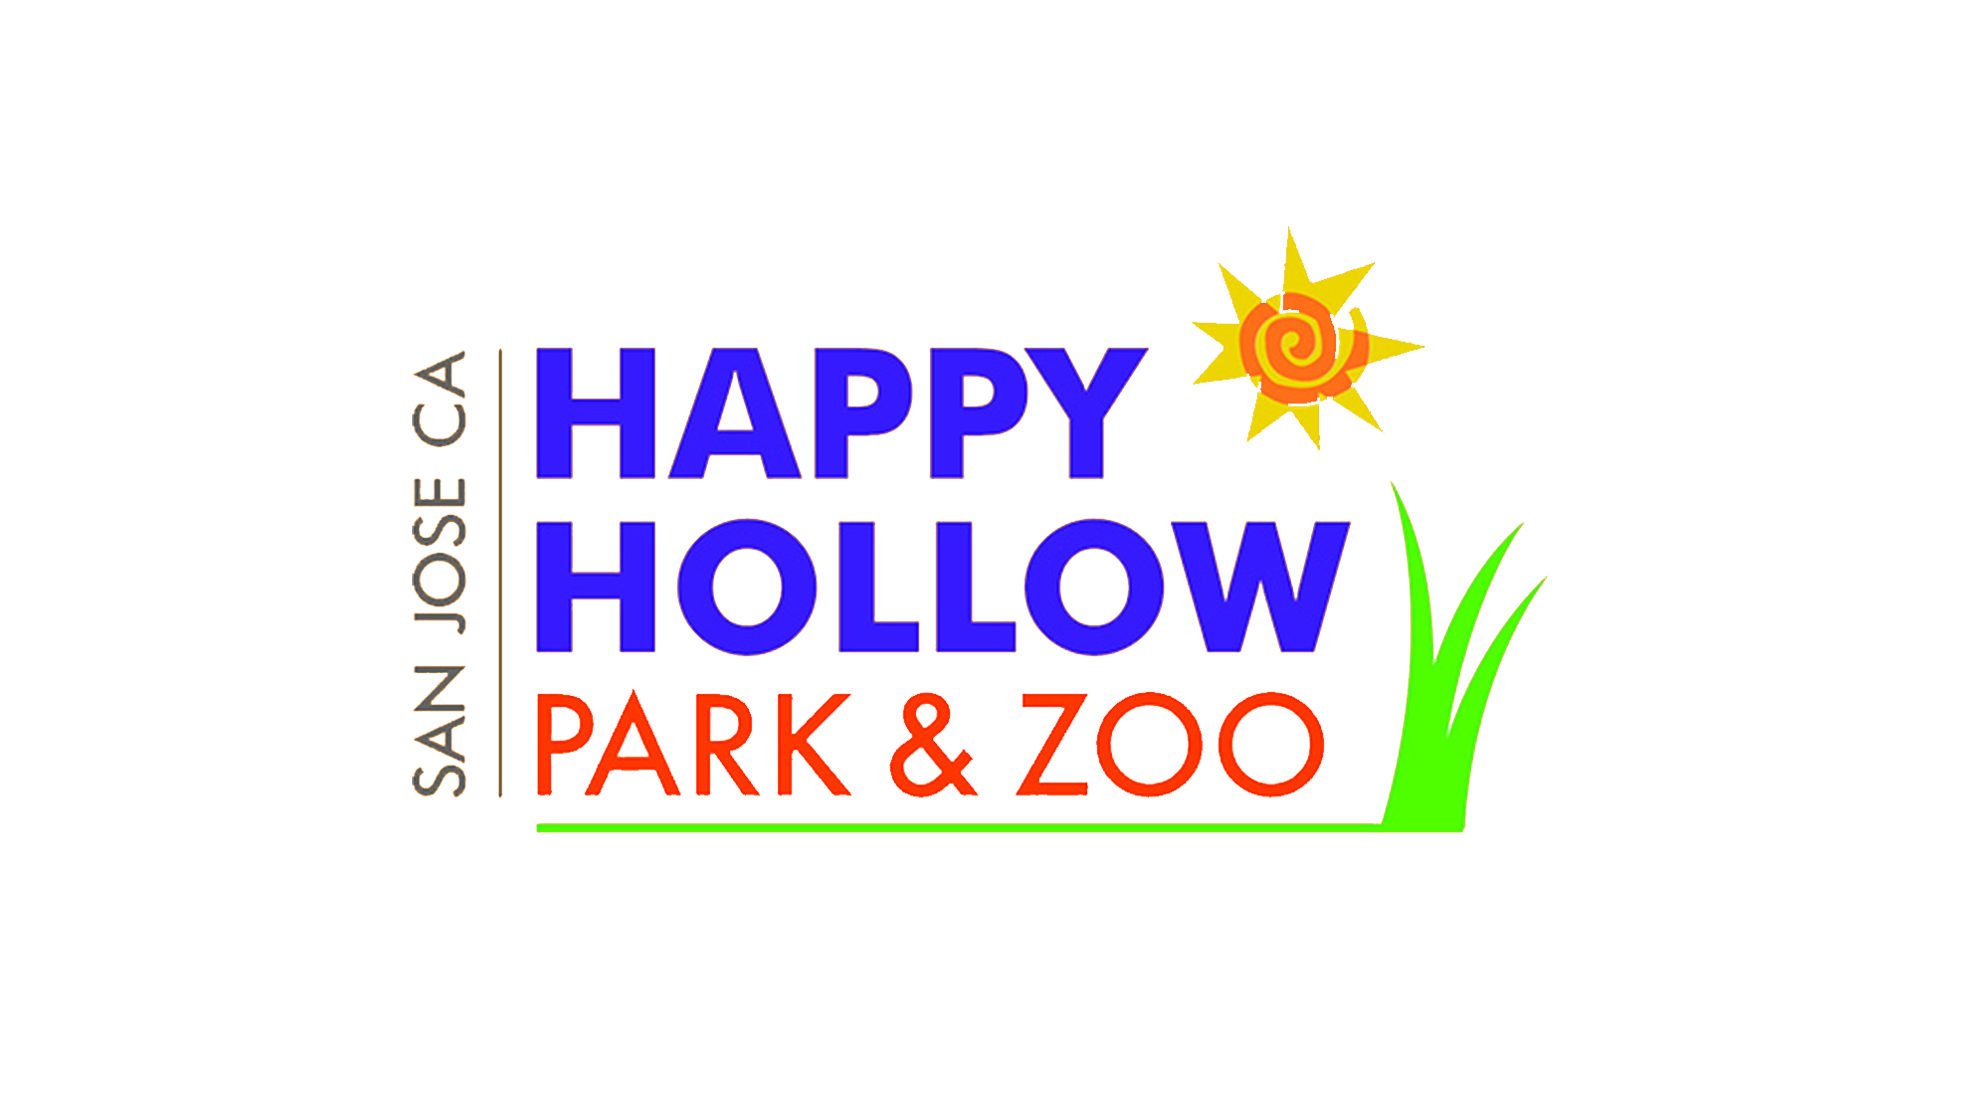 Happy Hollow Park & Zoo logo